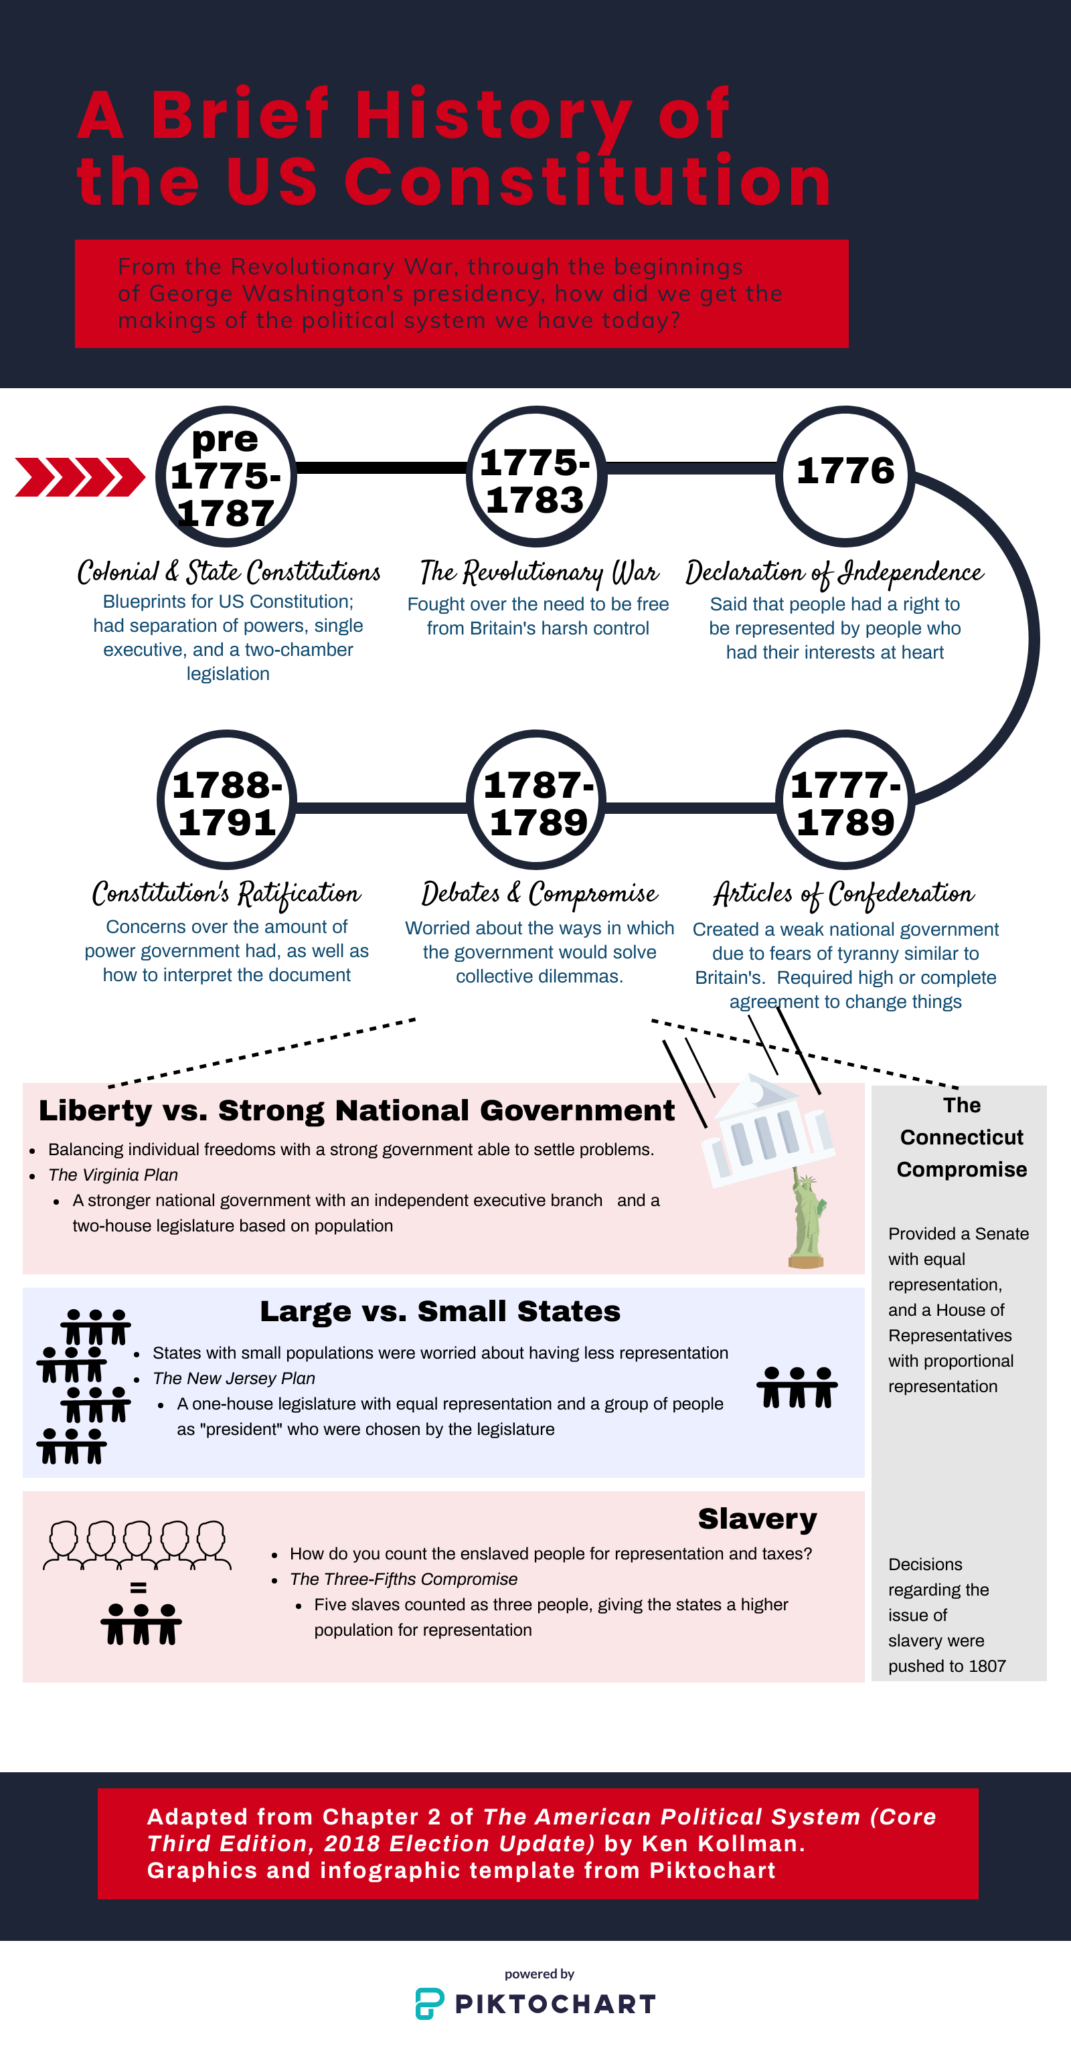 an infographic about the origins of the US Constitution